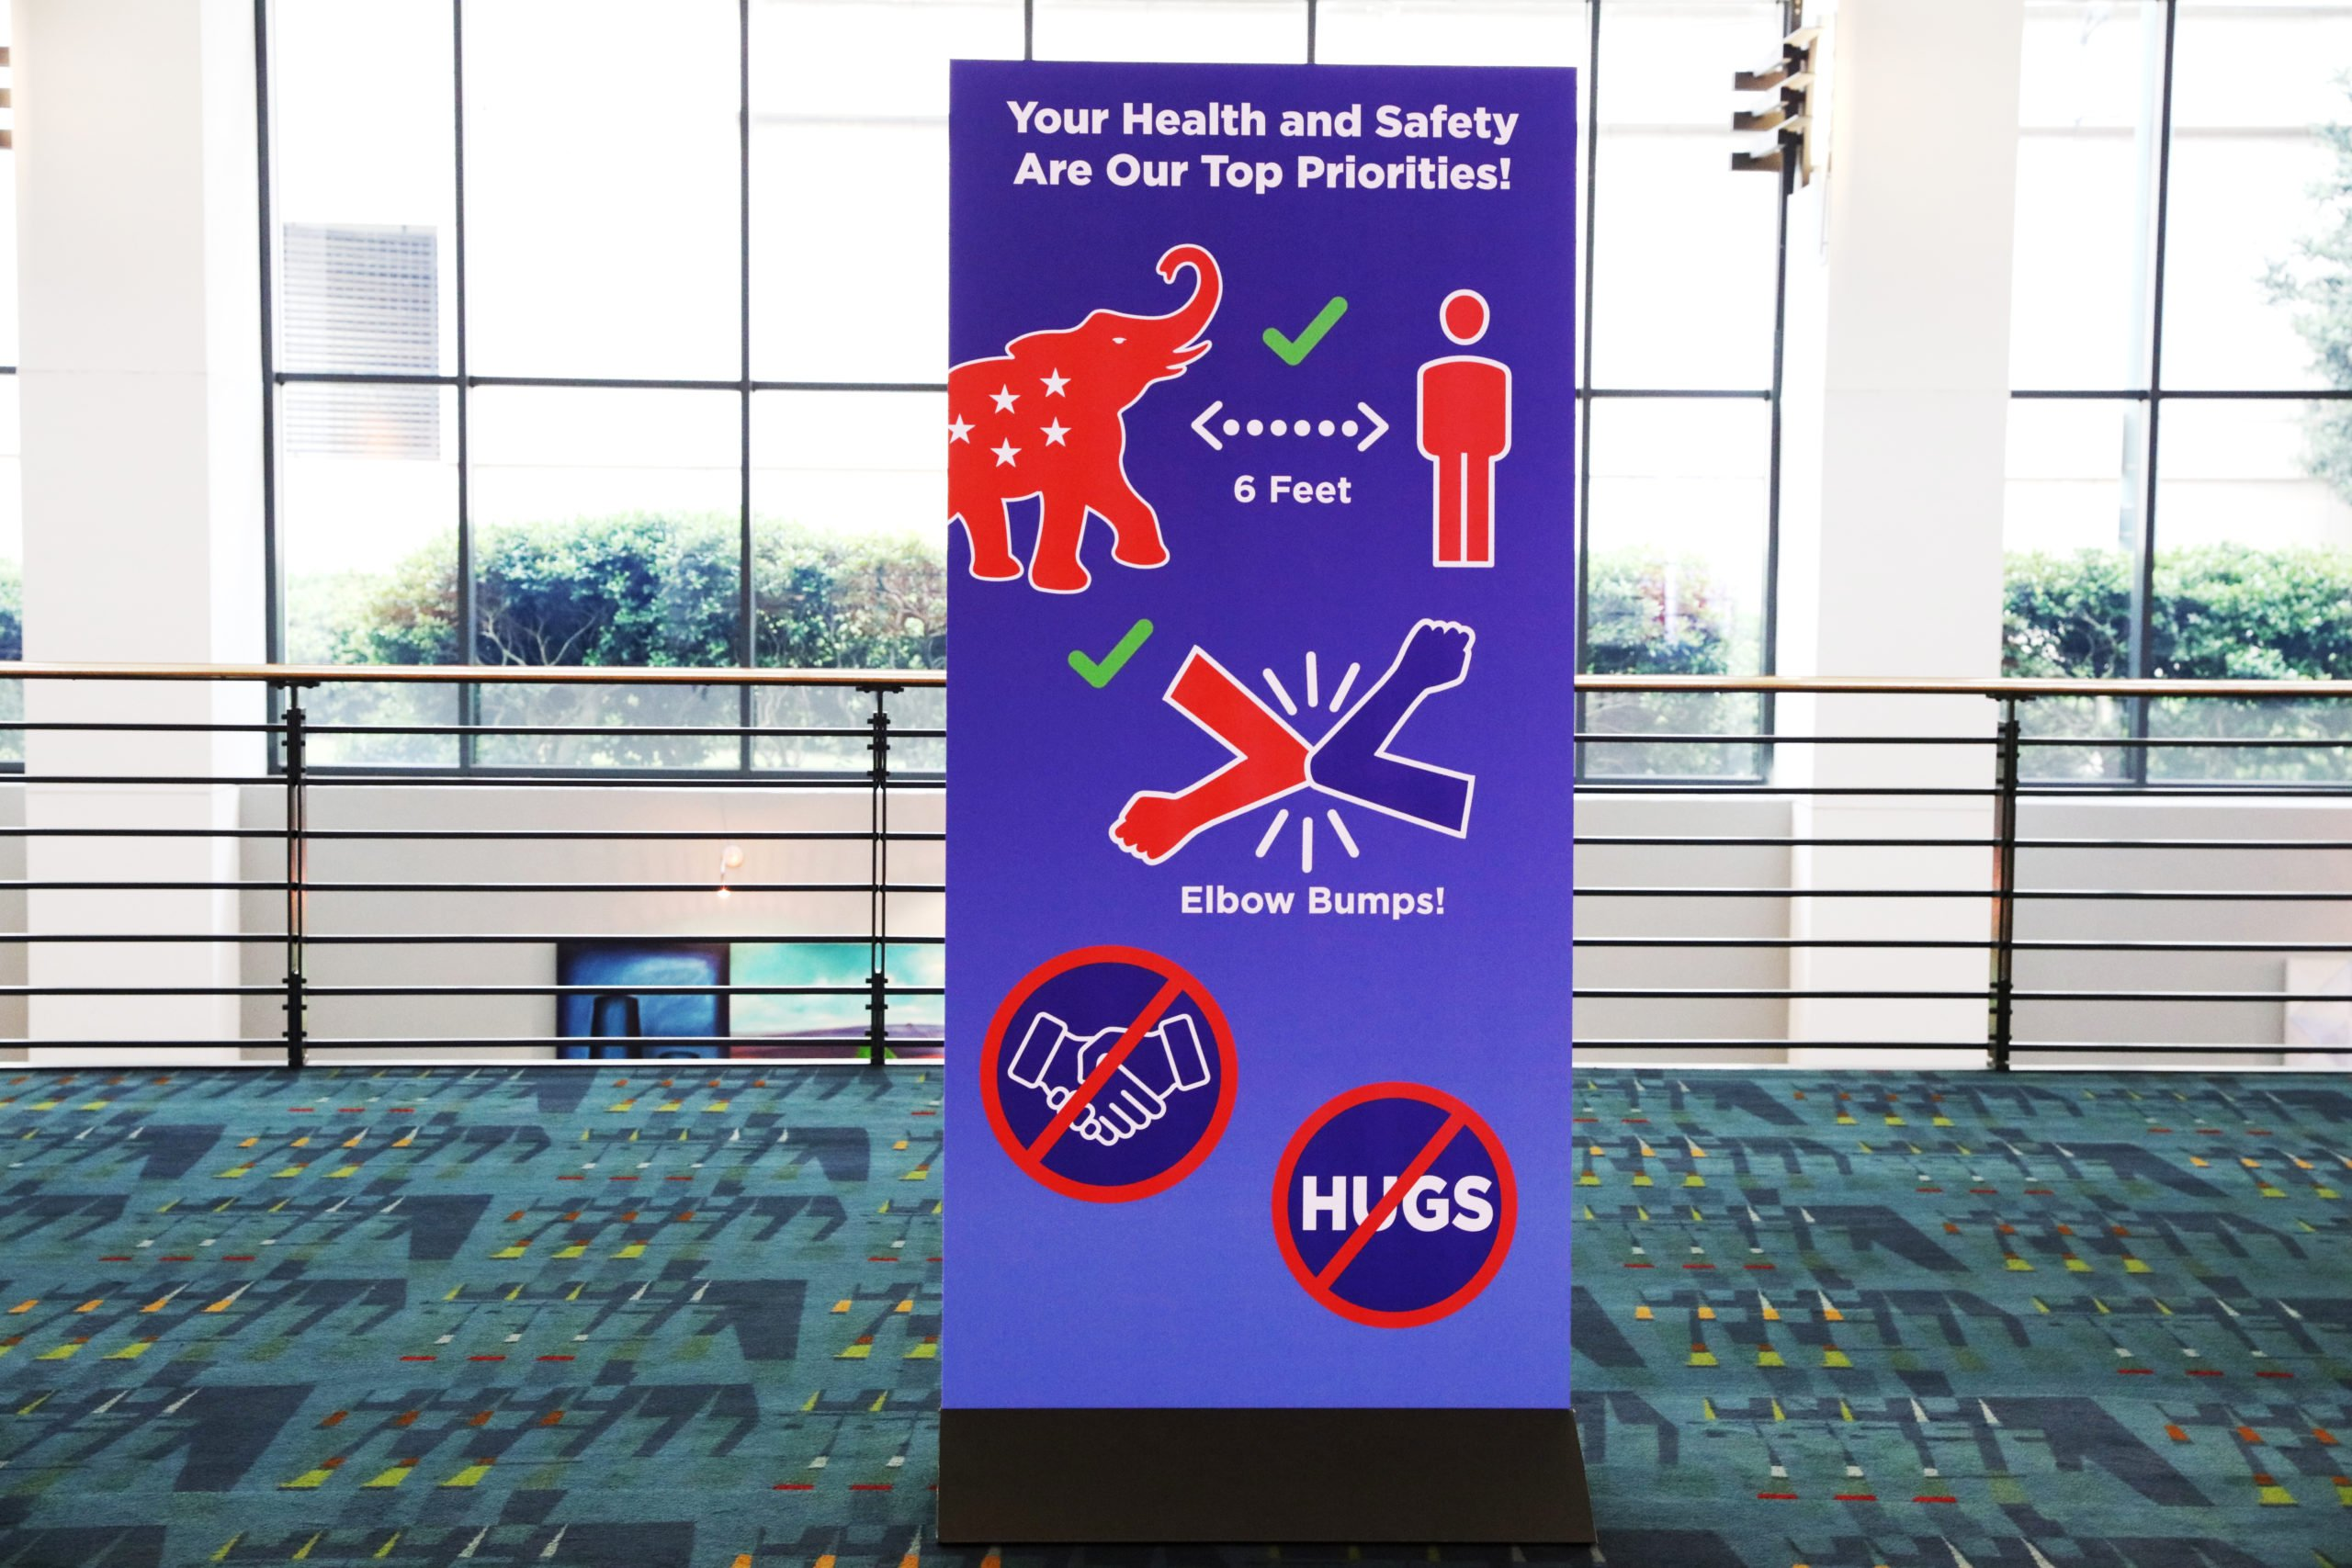 CHARLOTTE, NORTH CAROLINA - AUGUST 24: Social distancing signs are displayed outside the Charlotte Convention Center's Richardson Ballroom for the Republican National Convention at the Charlotte Convention Center on August 24, 2020 in Charlotte, North Carolina. (Photo by Travis Dove - Pool/Getty Images)